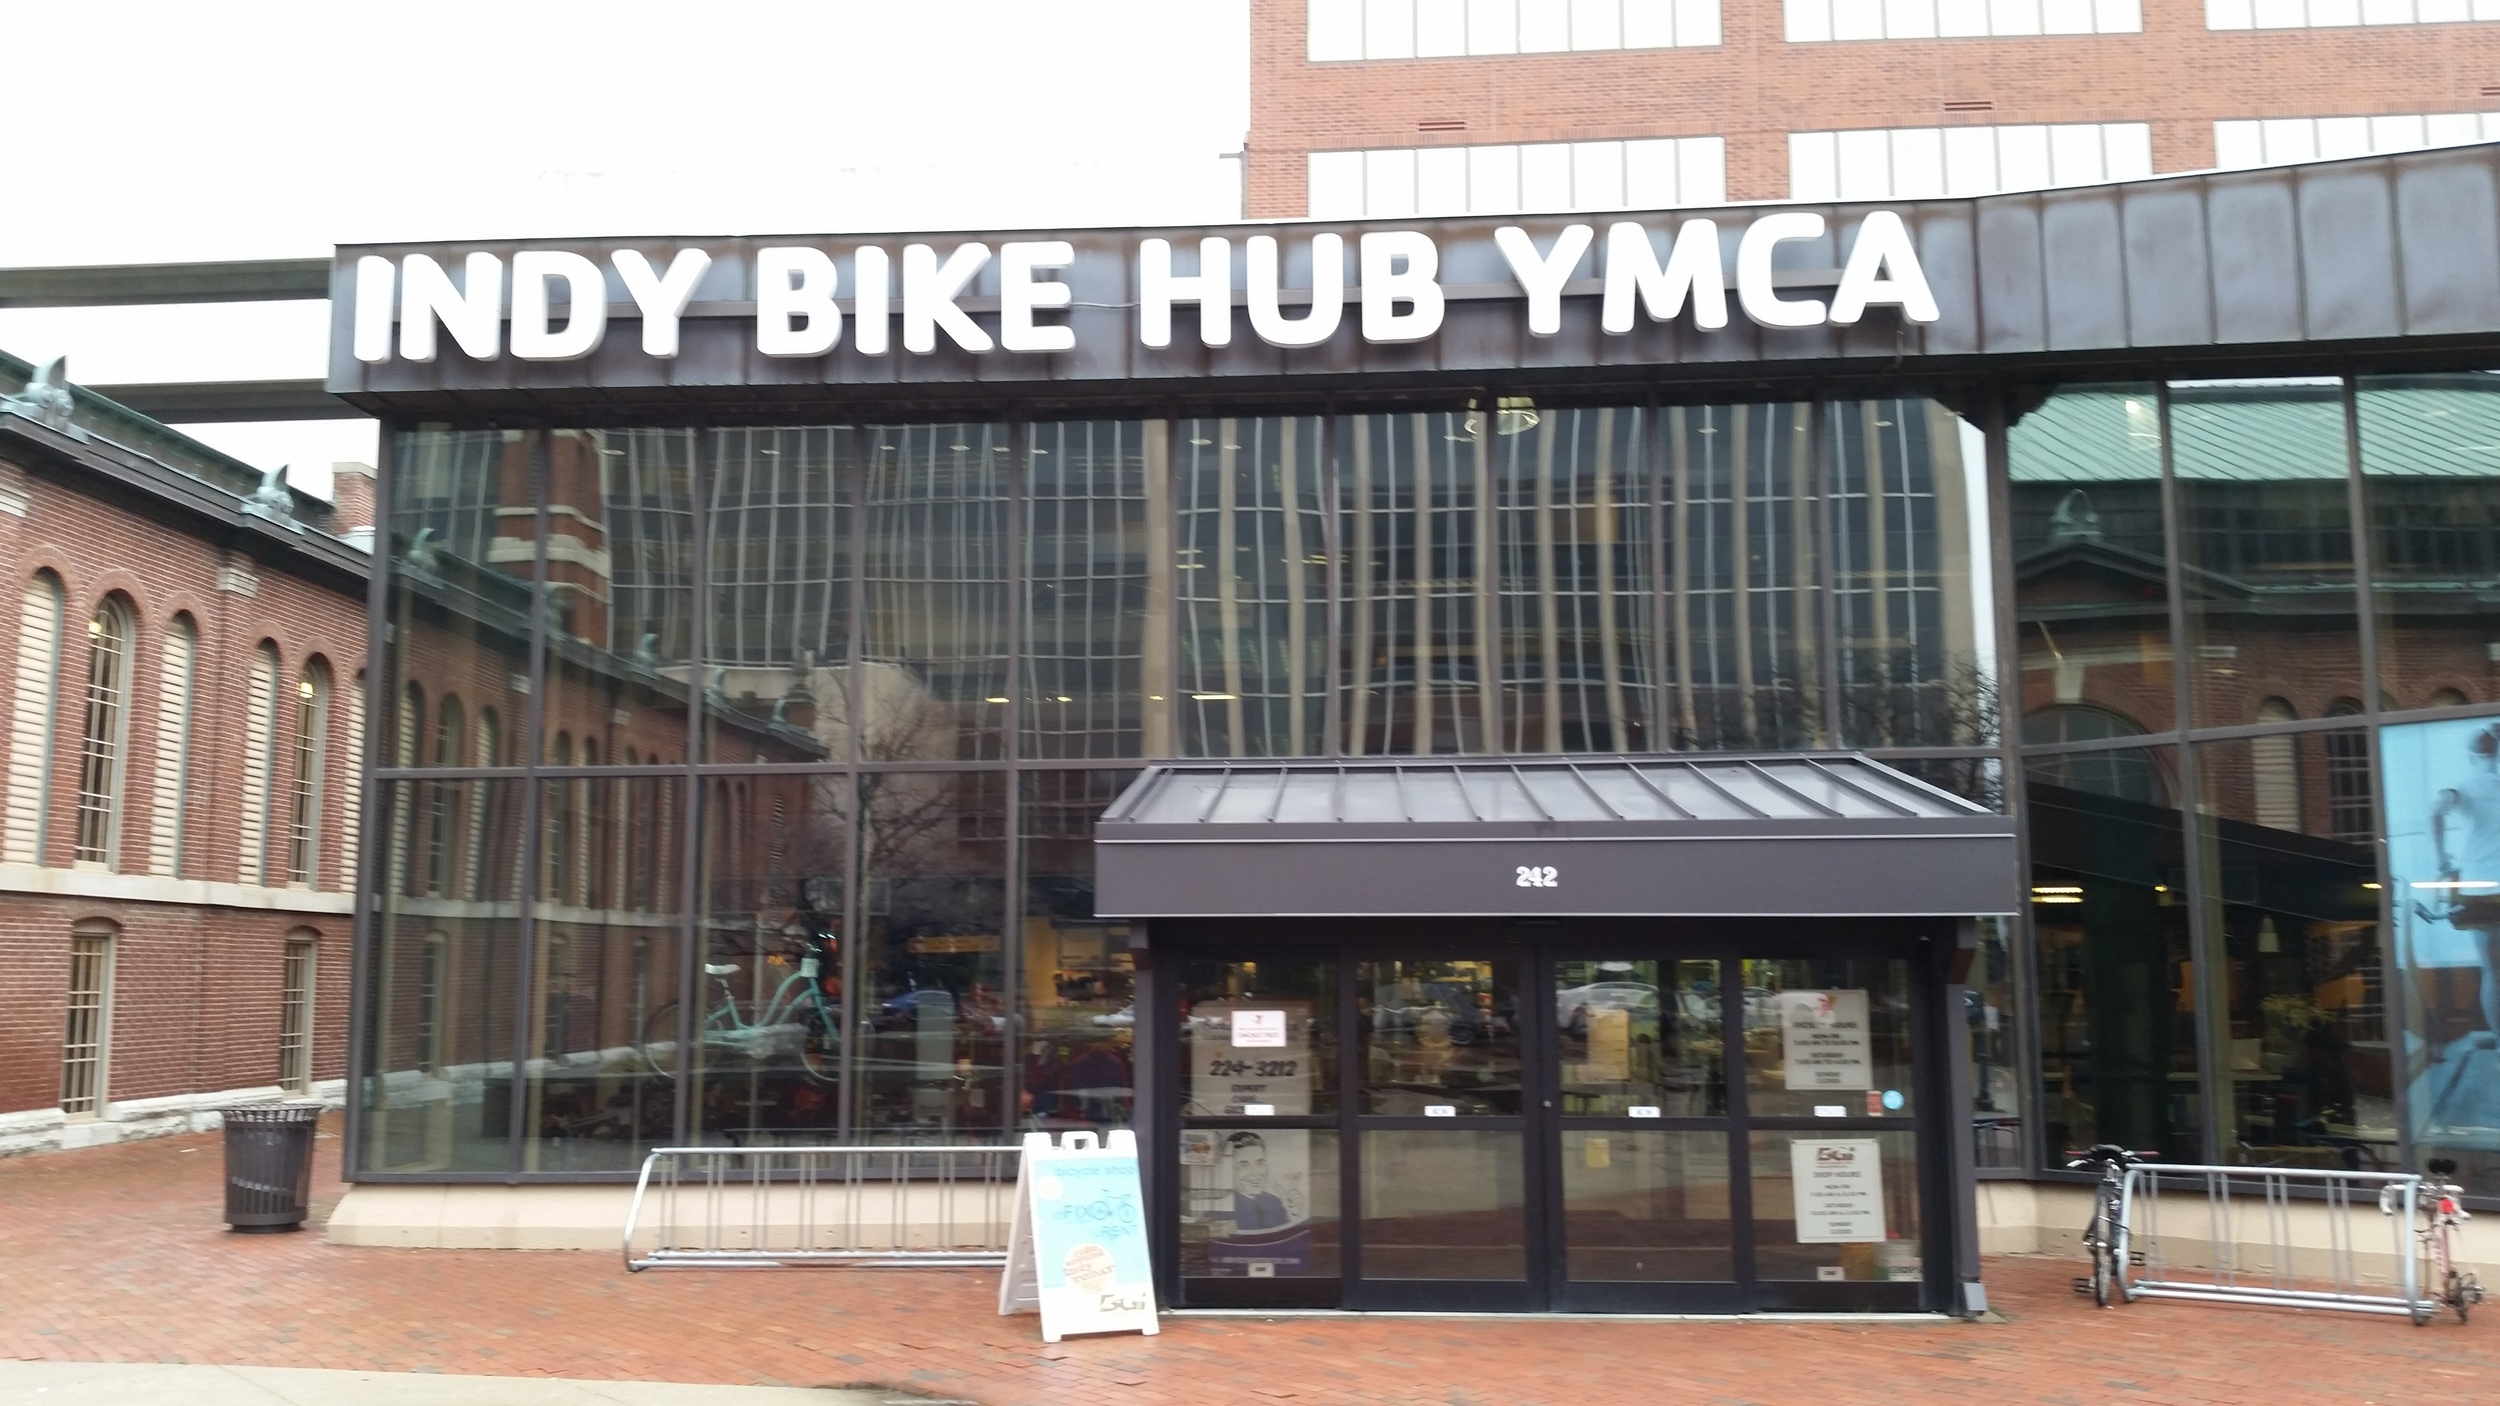 Bike hub research took us to Indianapolis for the day!